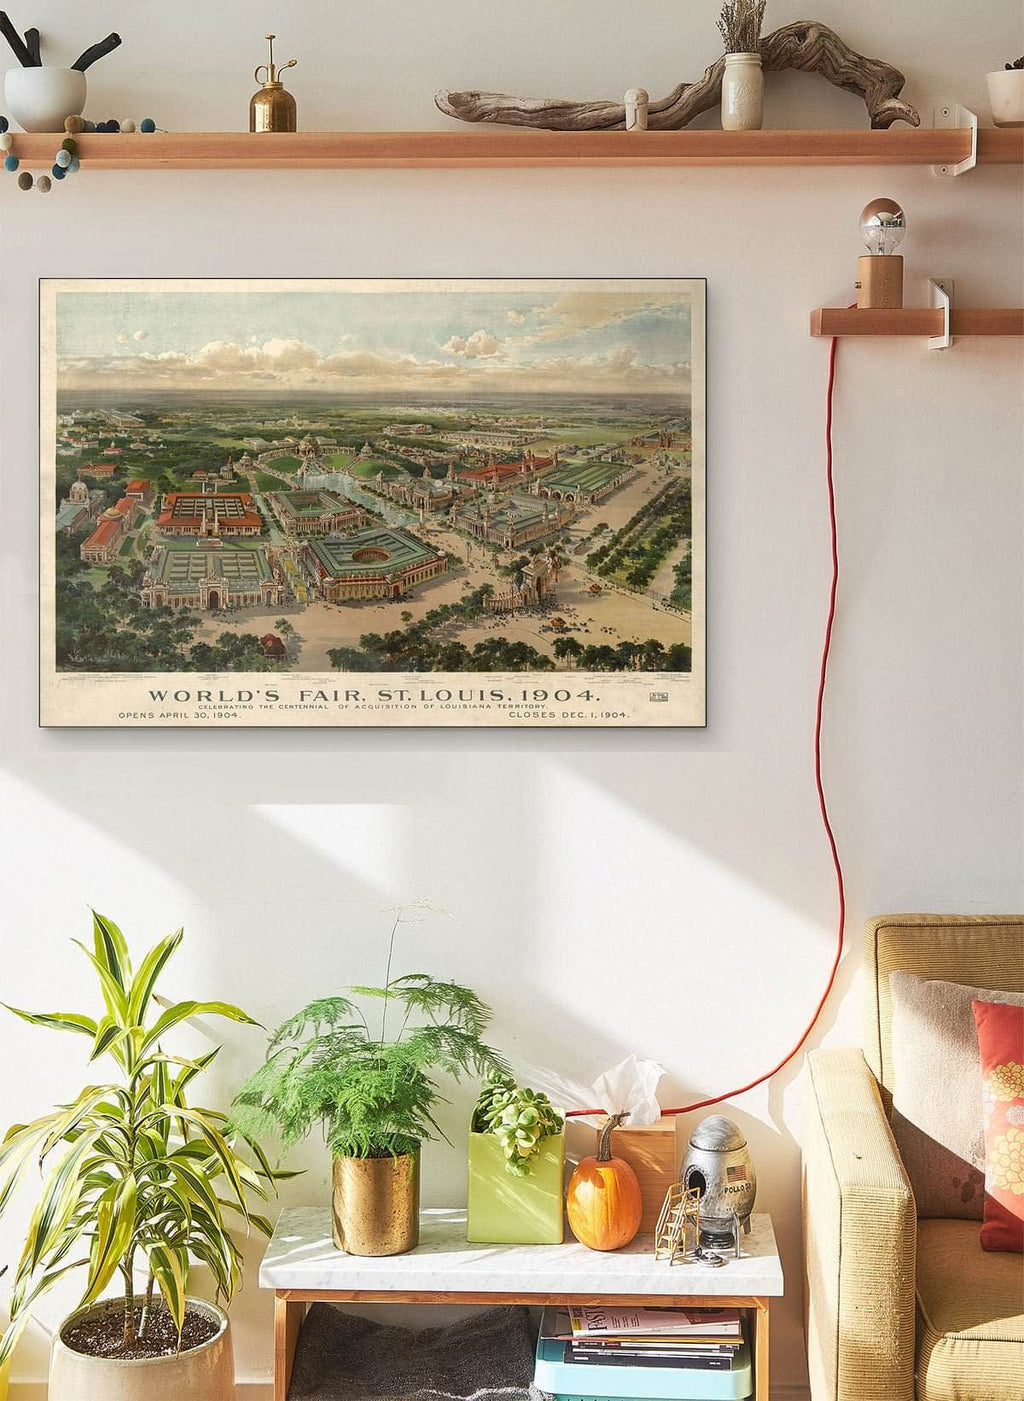 World's Fair St Louis 1904 Vintage Map